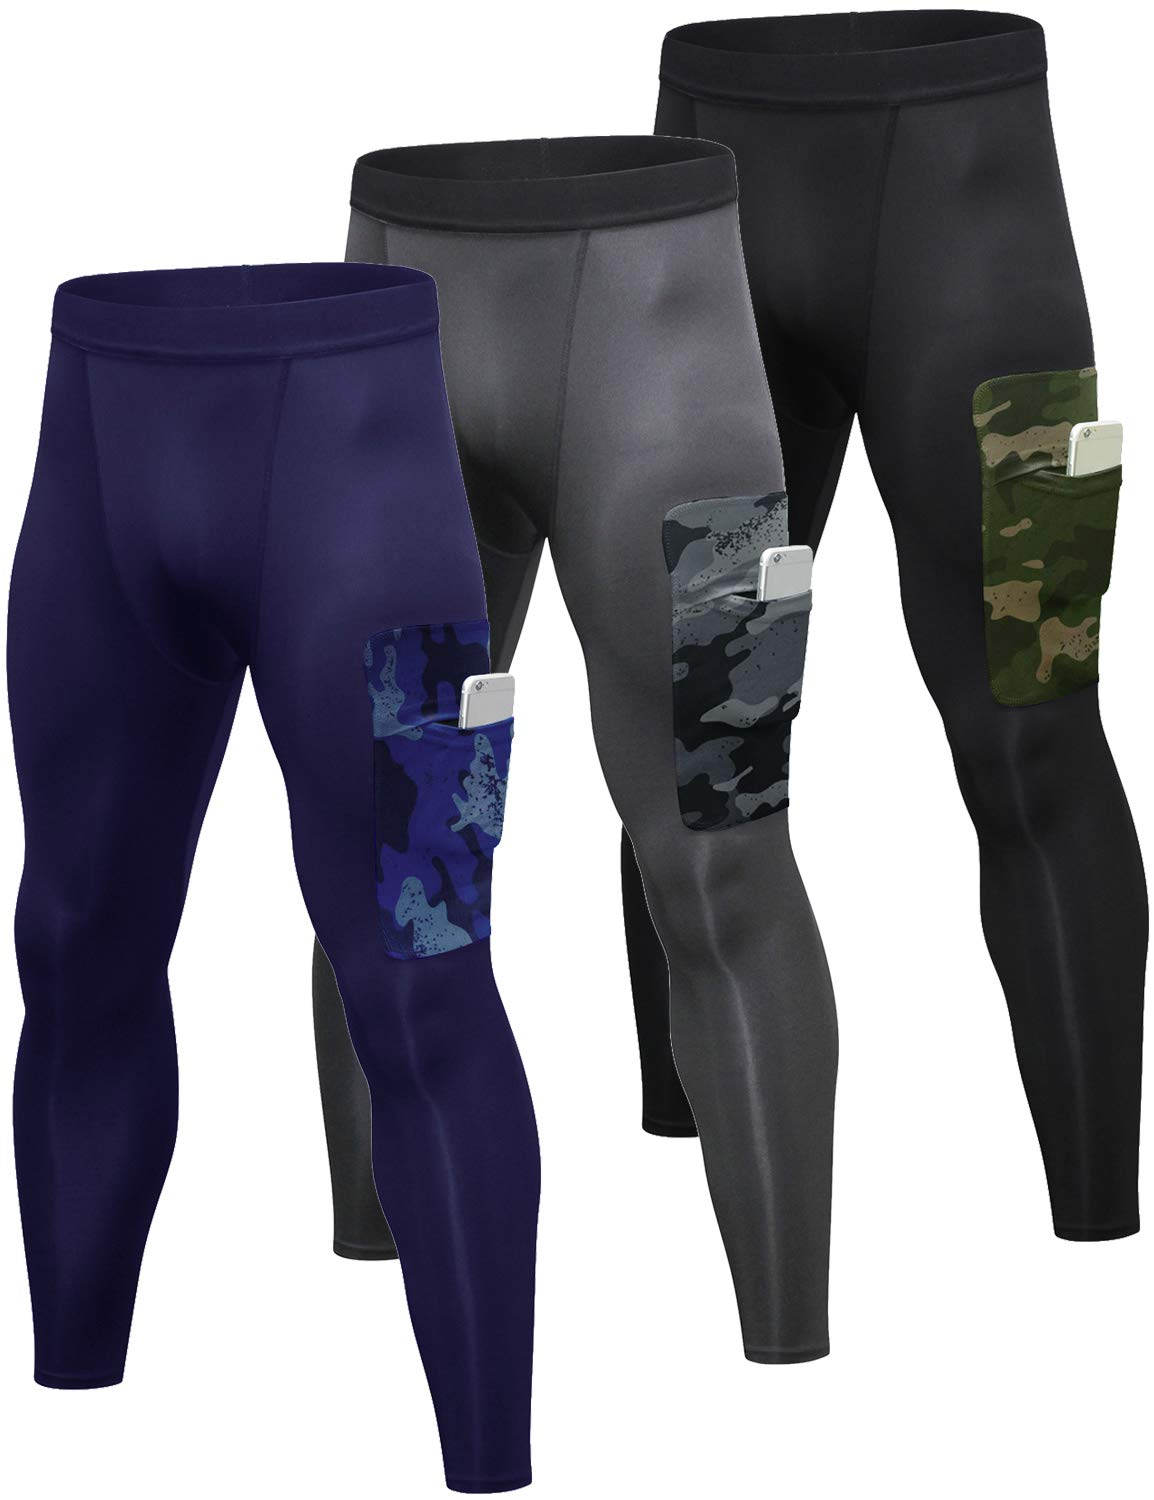 Lavento Men's Compression Pants Baselayer Cool Dry Pocket Running Ankle Leggings Active Tights (3 Pack-3920 Black-Green/Gray/Navy Blue,2X-Large) by Lavento